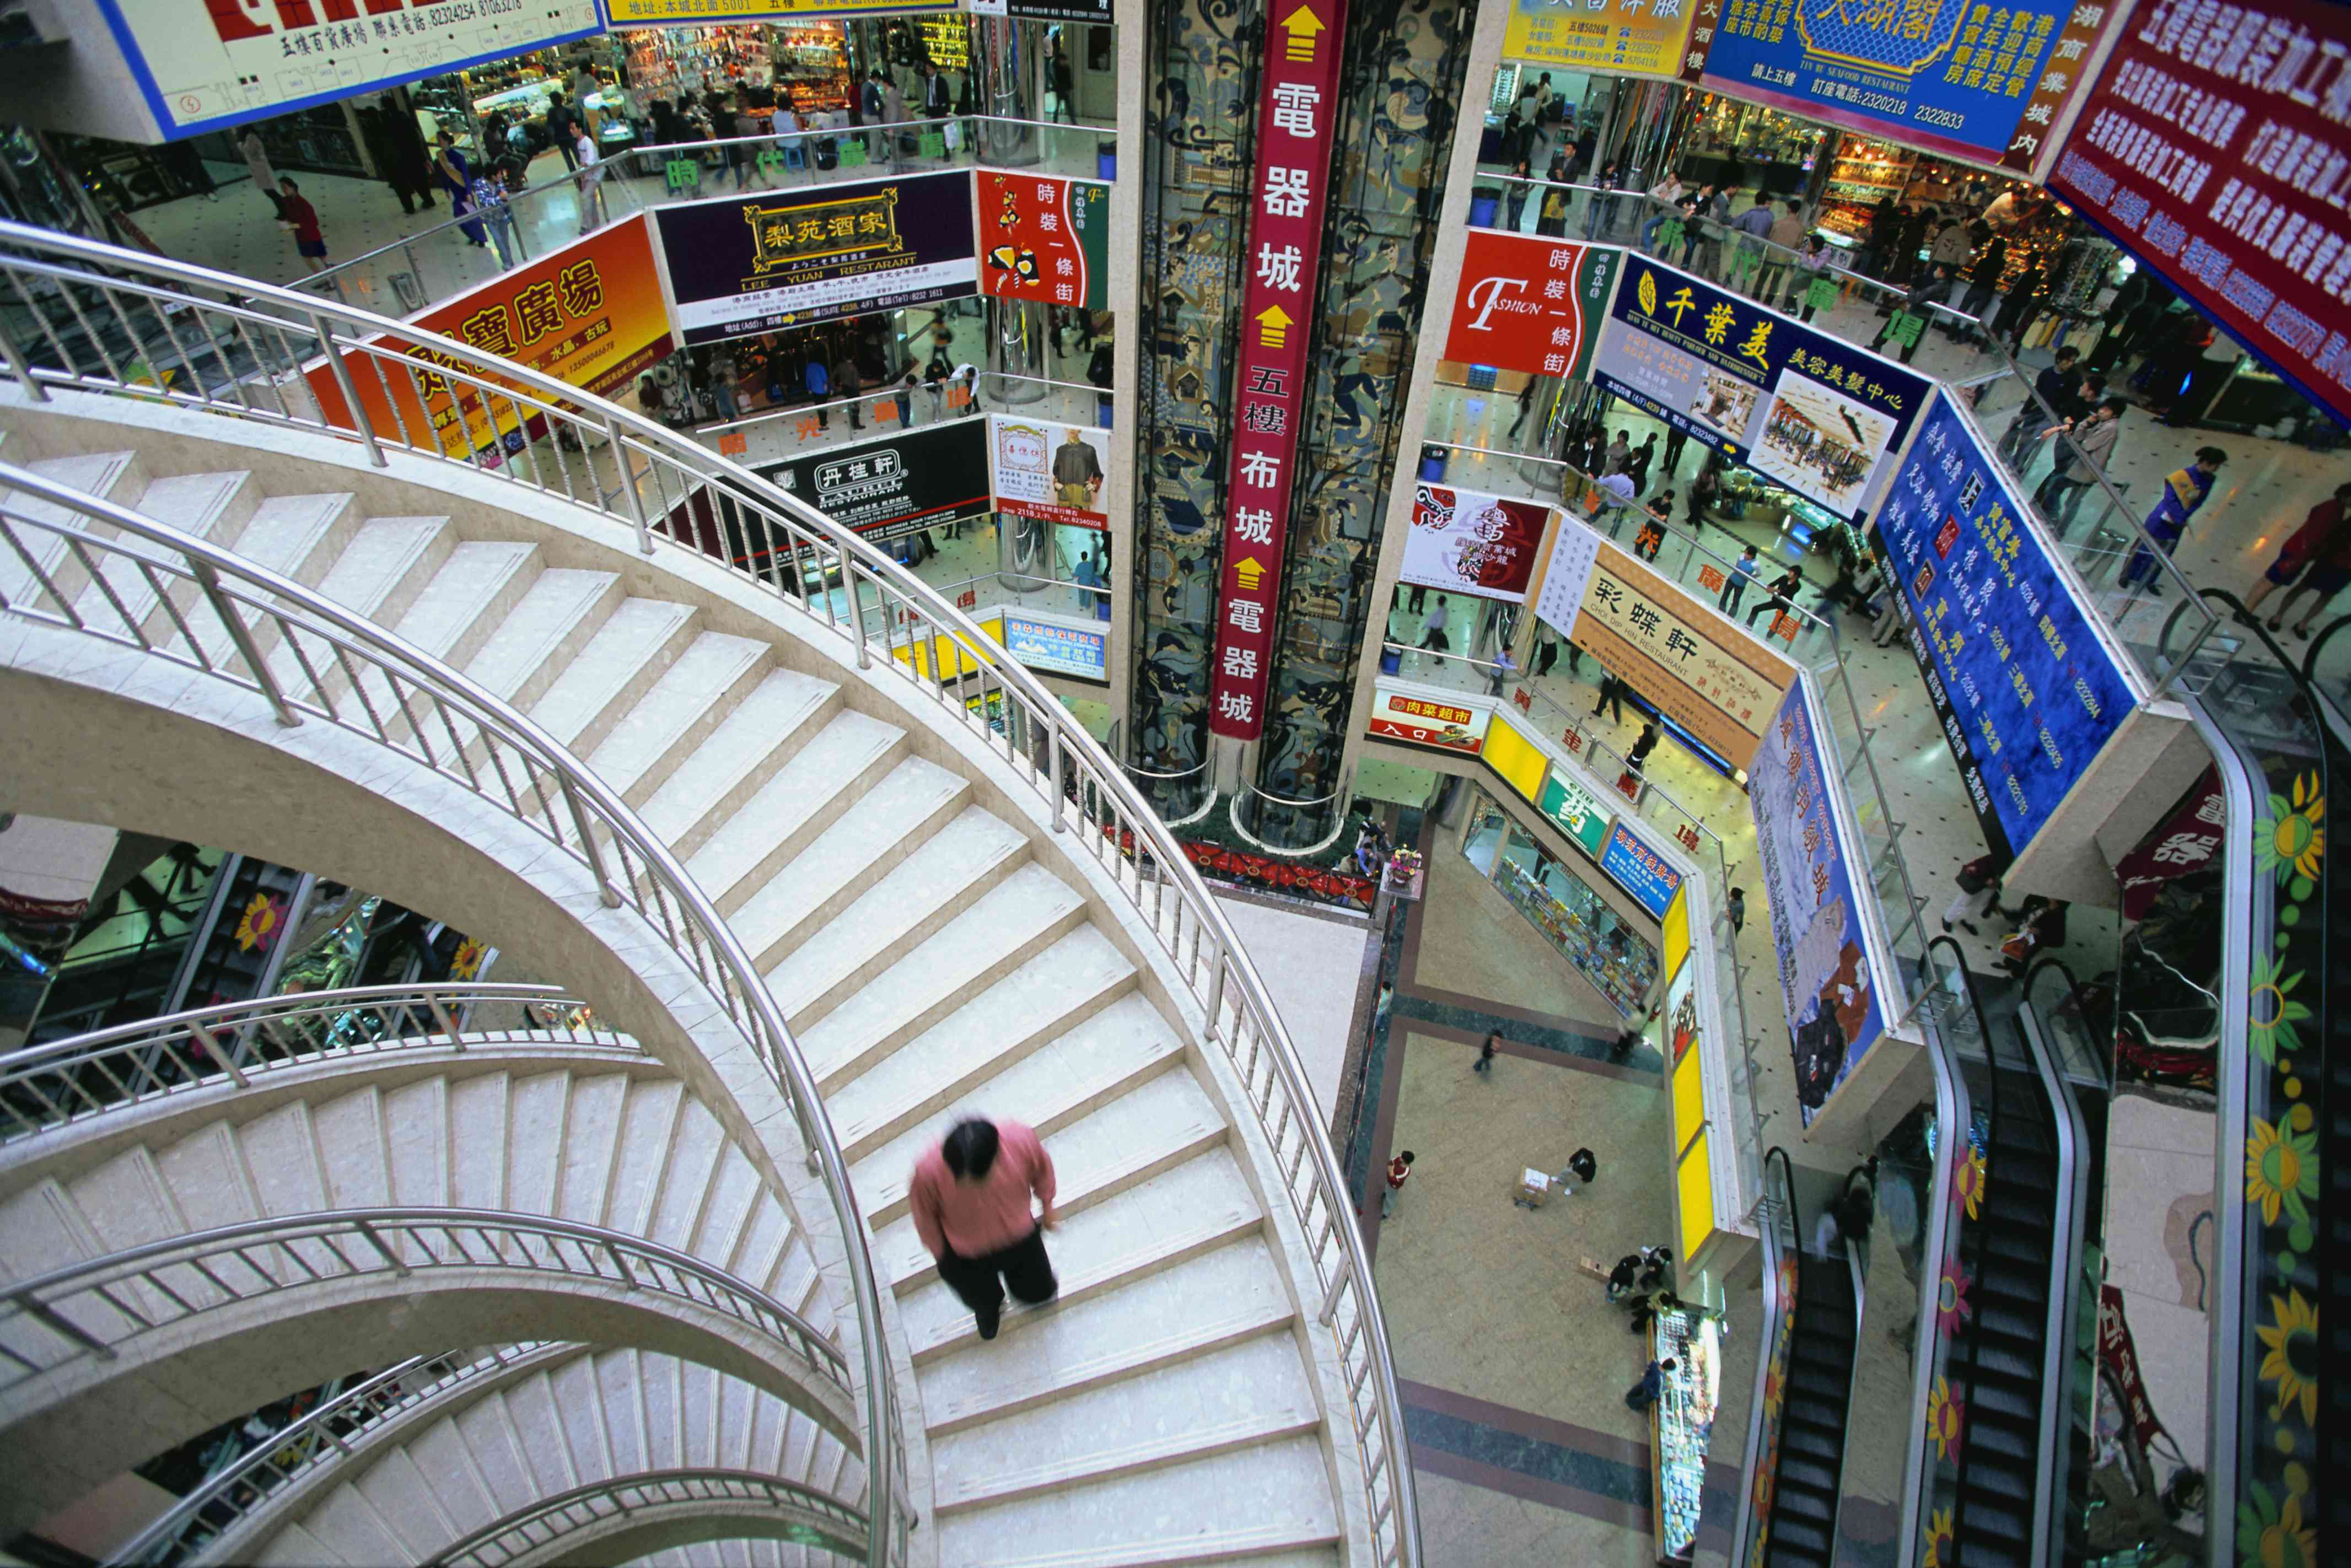 The interior of Luohu Commercial City shopping mall in Shenzhen